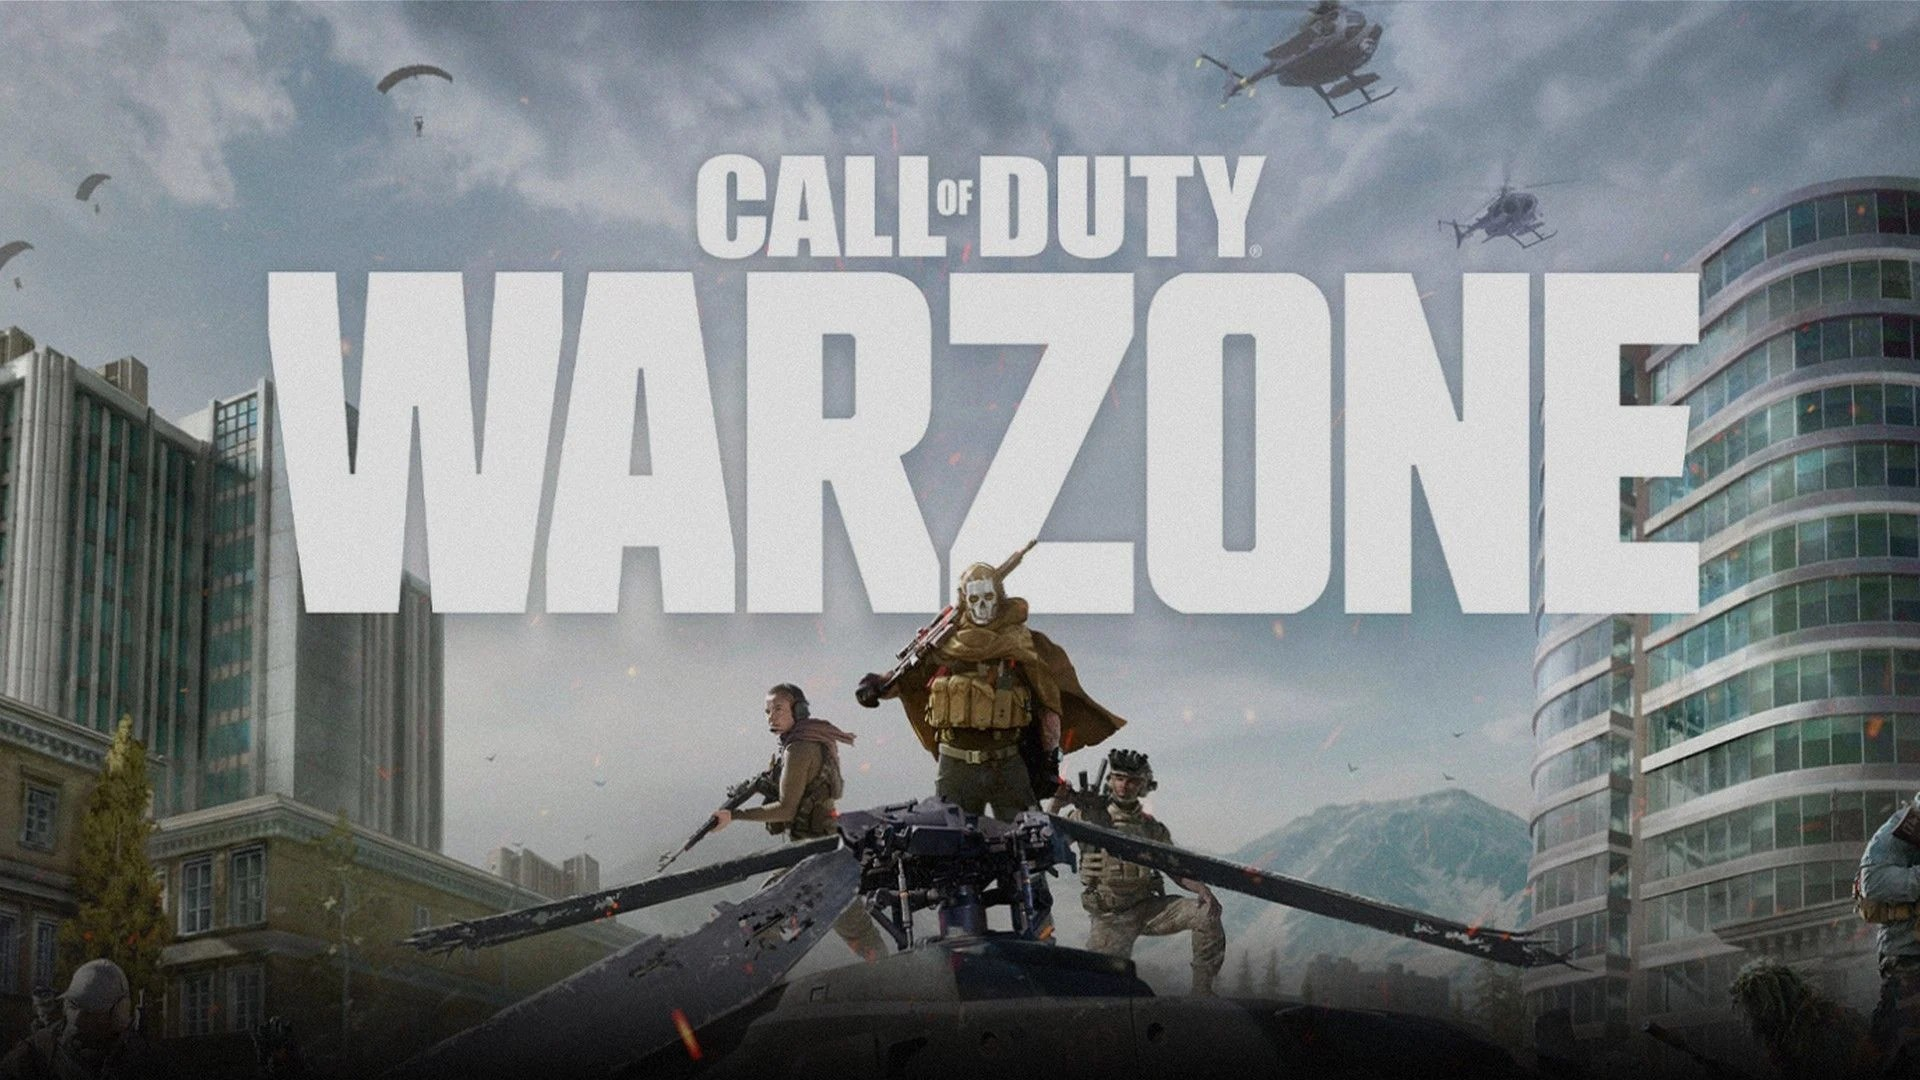 An area marked by extreme. Call Of Duty Warzone Wallpapers Top Free Call Of Duty Warzone Backgrounds Wallpaperaccess